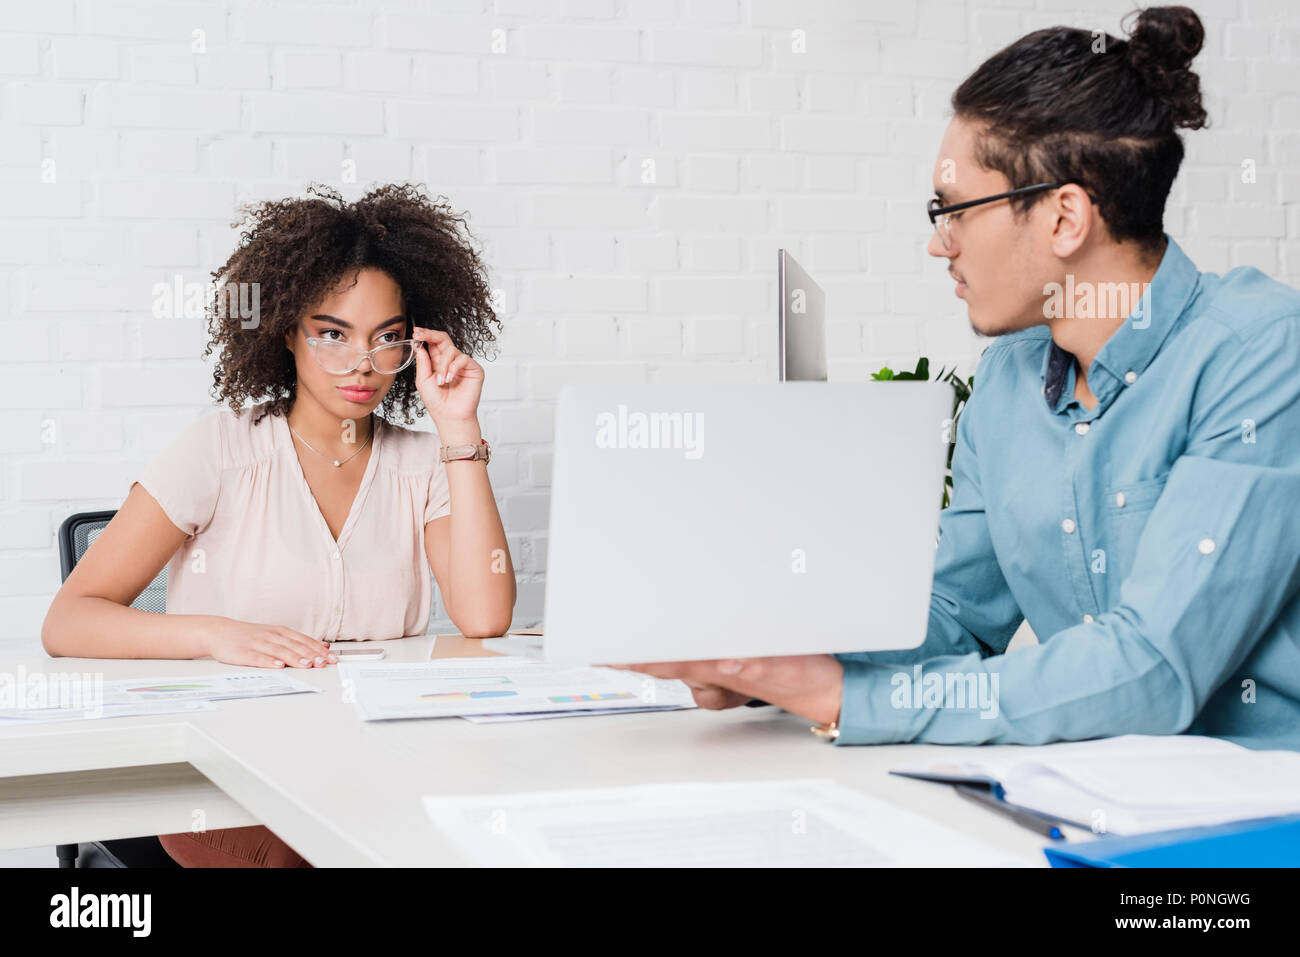 Businessman showing something on laptop to african american businesswoman in office - Stock Image